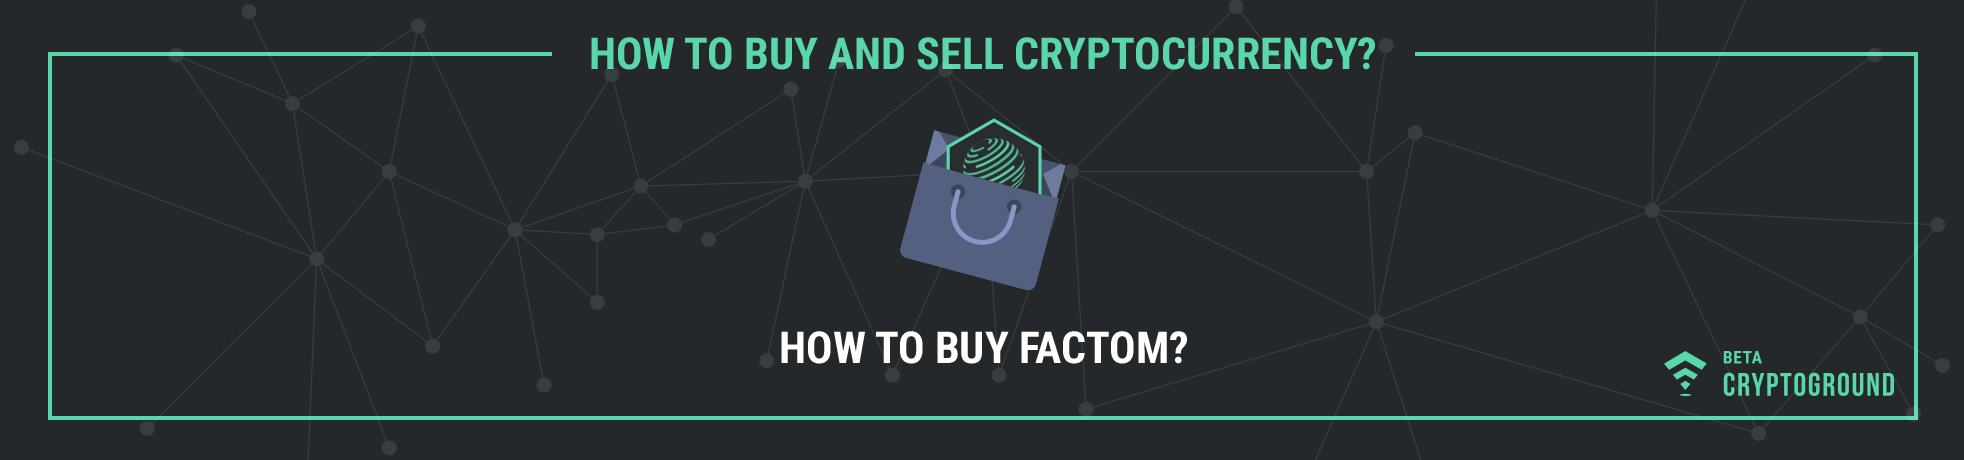 How to Buy Factom?